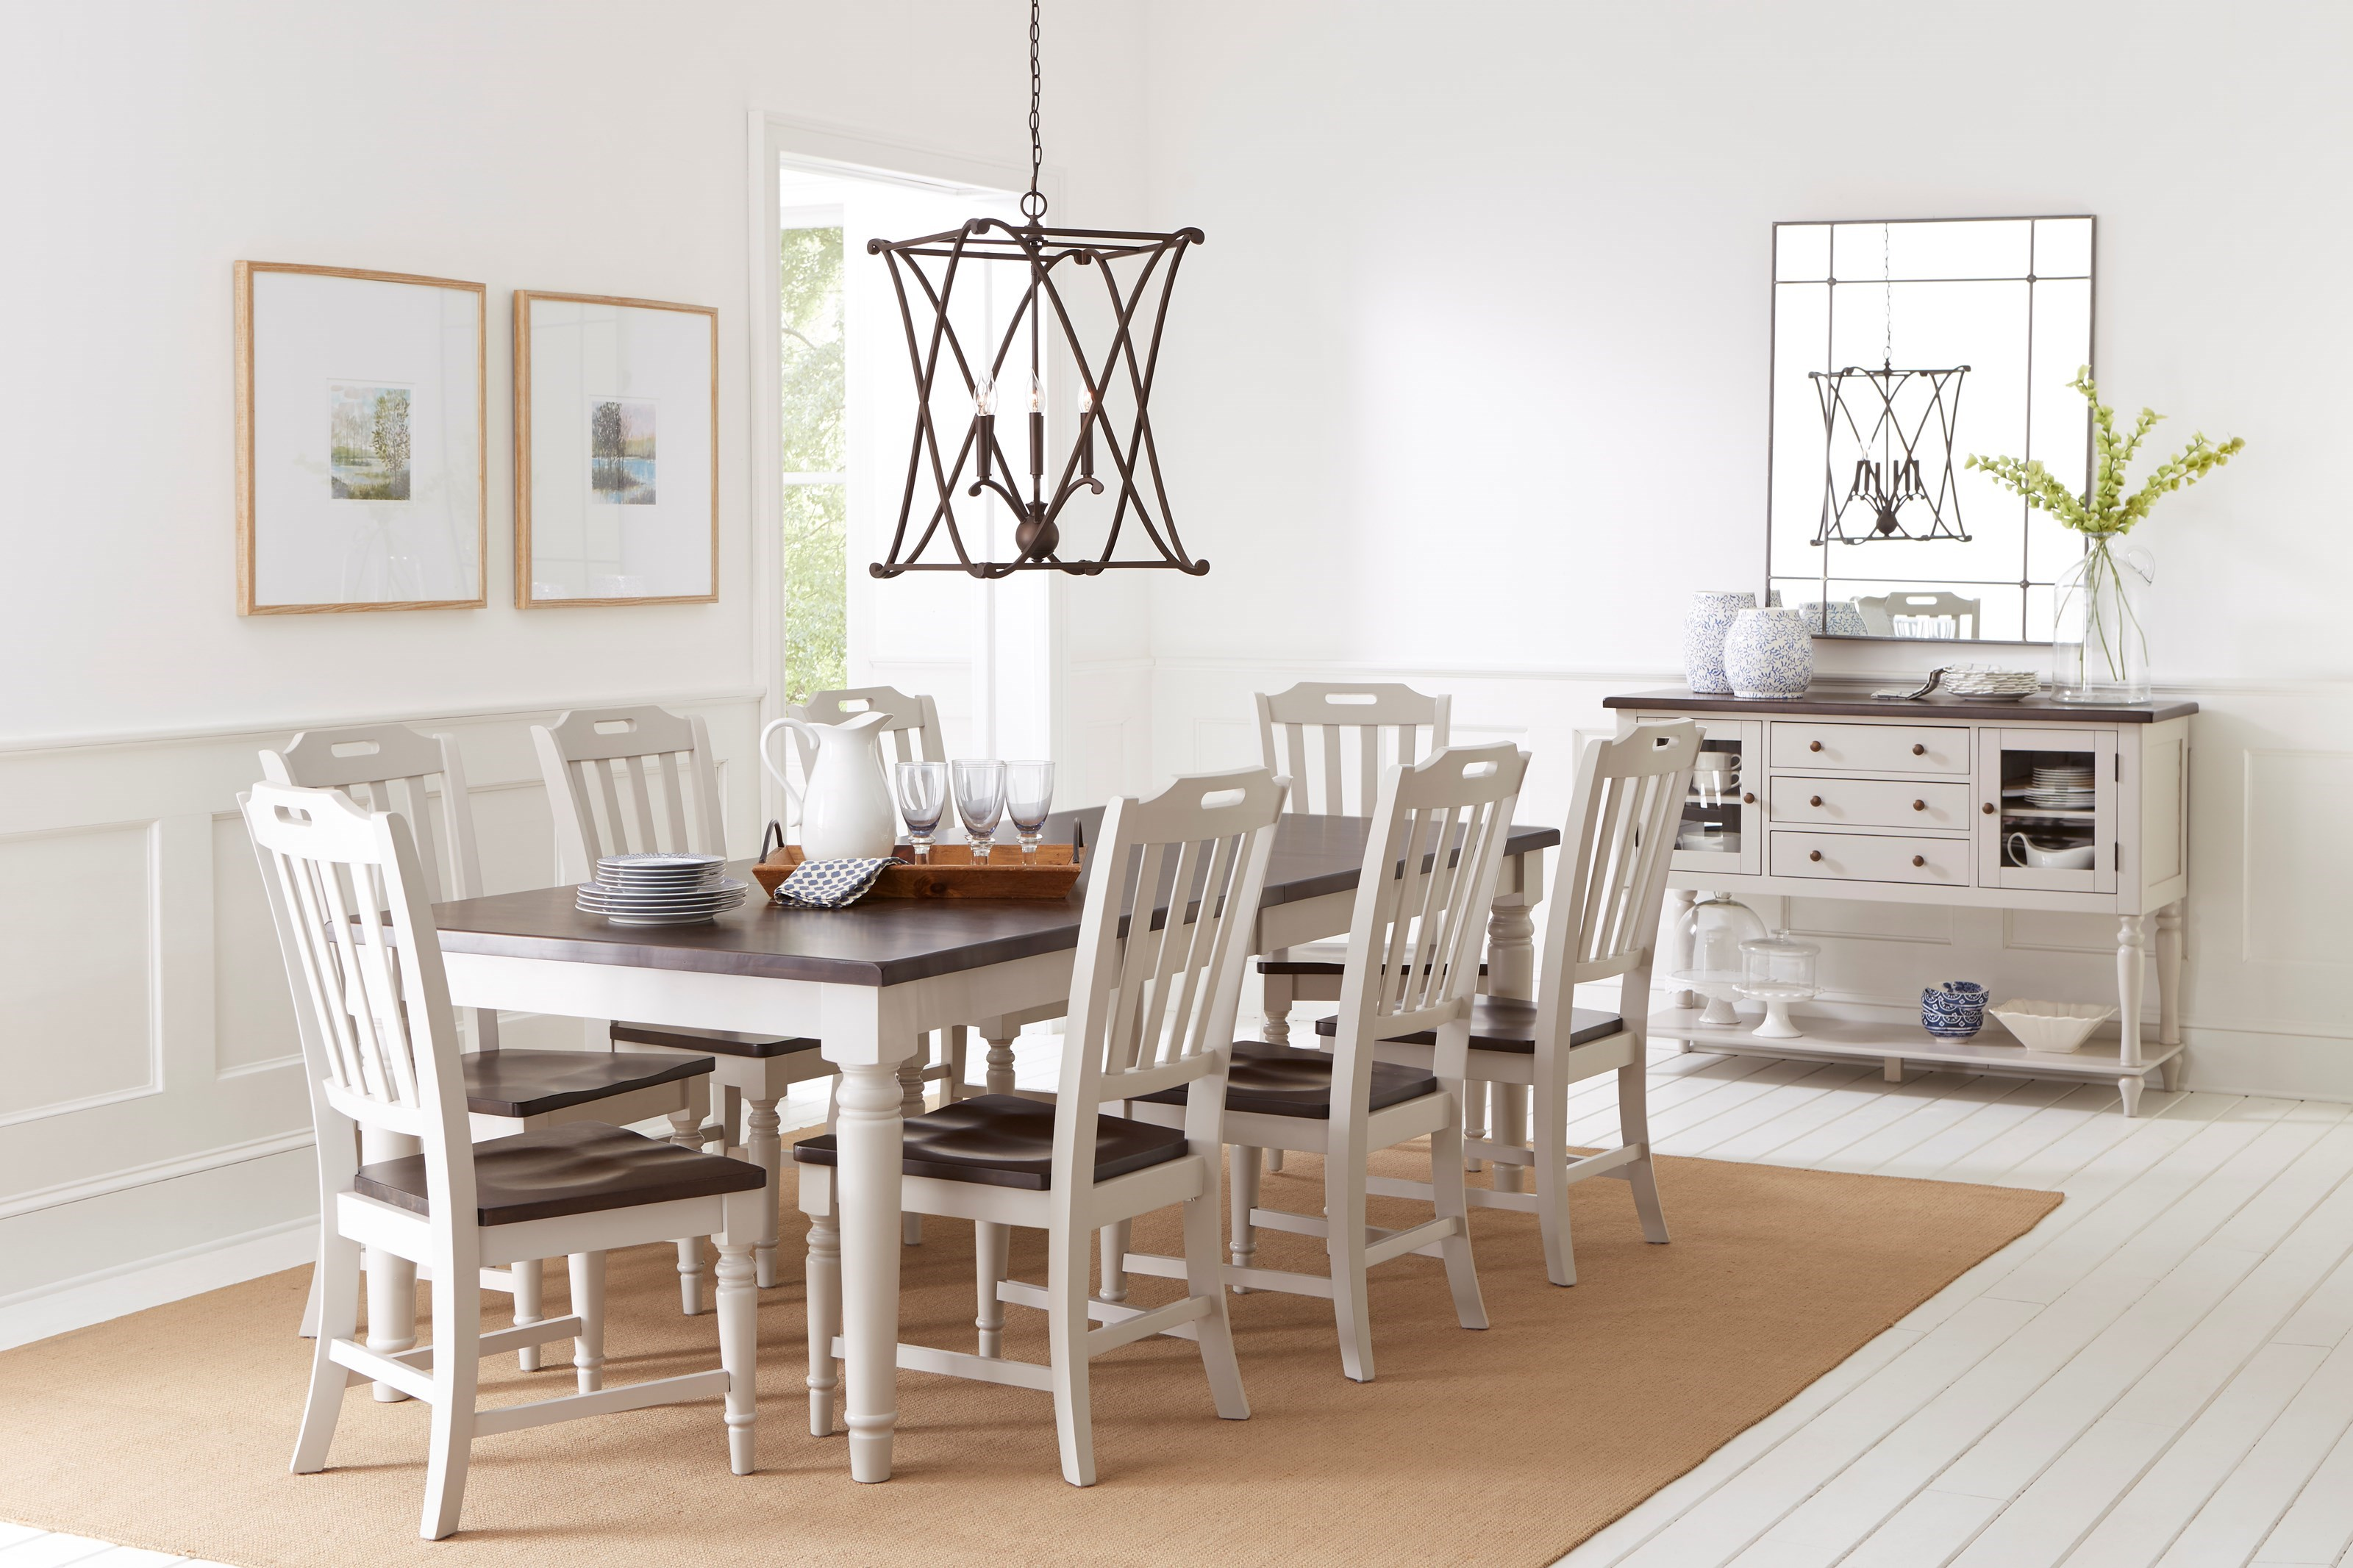 Jofran Orchard Park Dining Table With 8 Chairs Godby Home Furnishings Dining 7 Or More Piece Sets